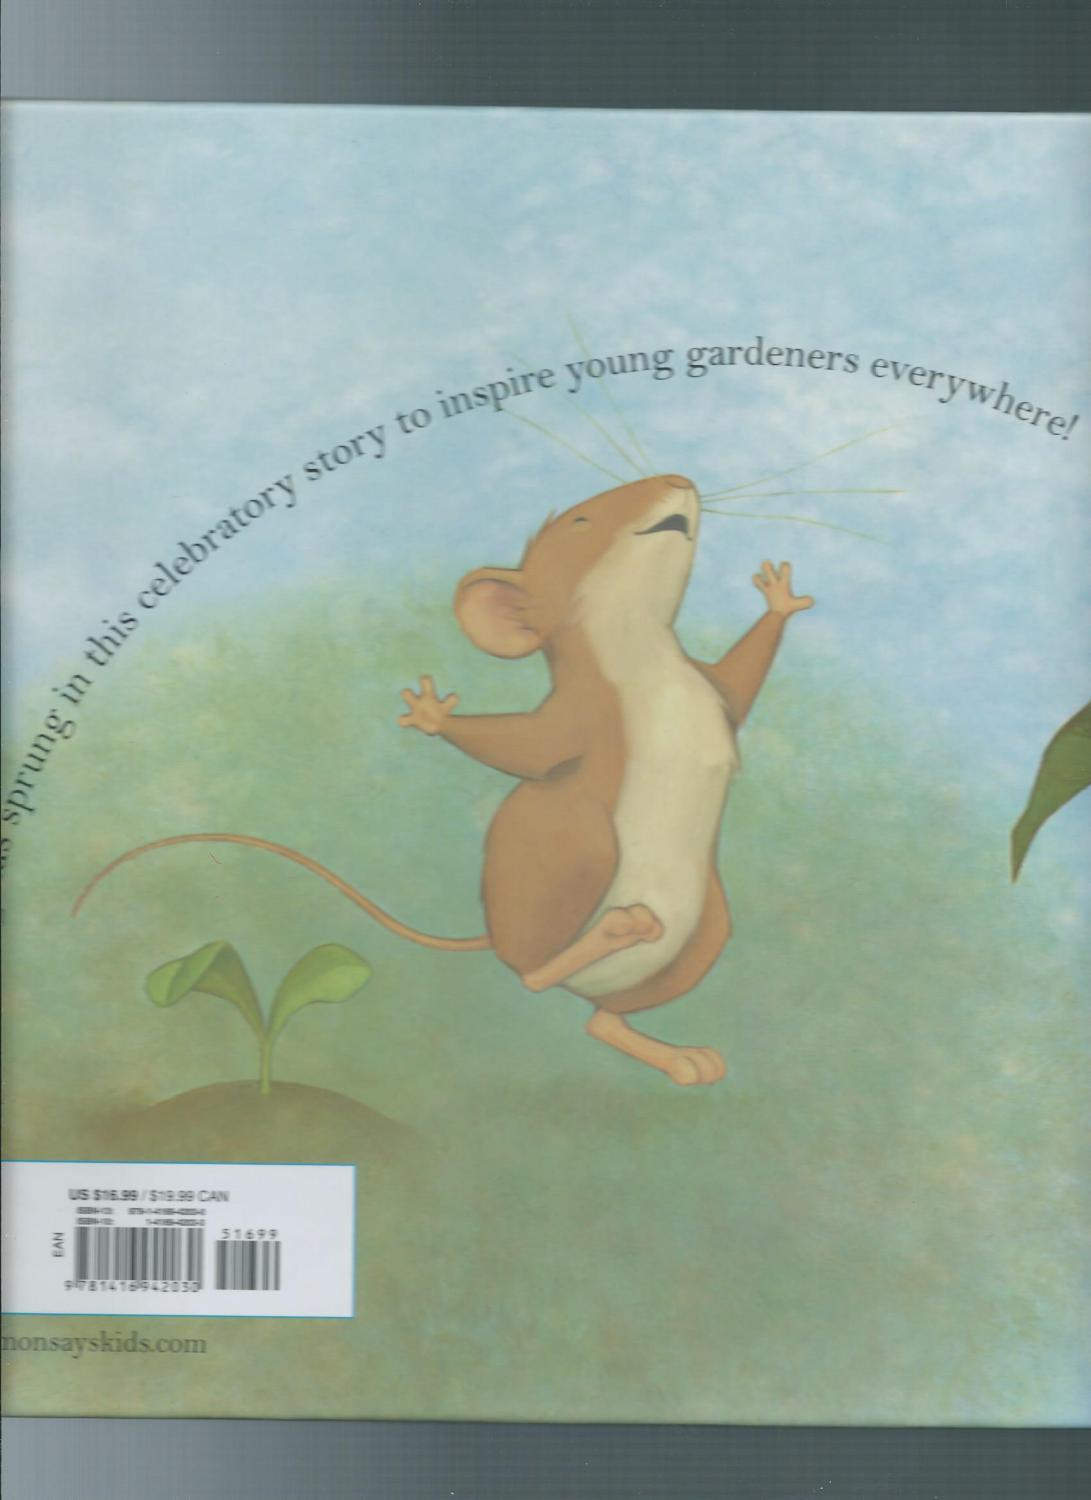 ... MORTIMER'S FIRST GARDEN: WILSON, KARMA author/ Anderson, Dan illust.by